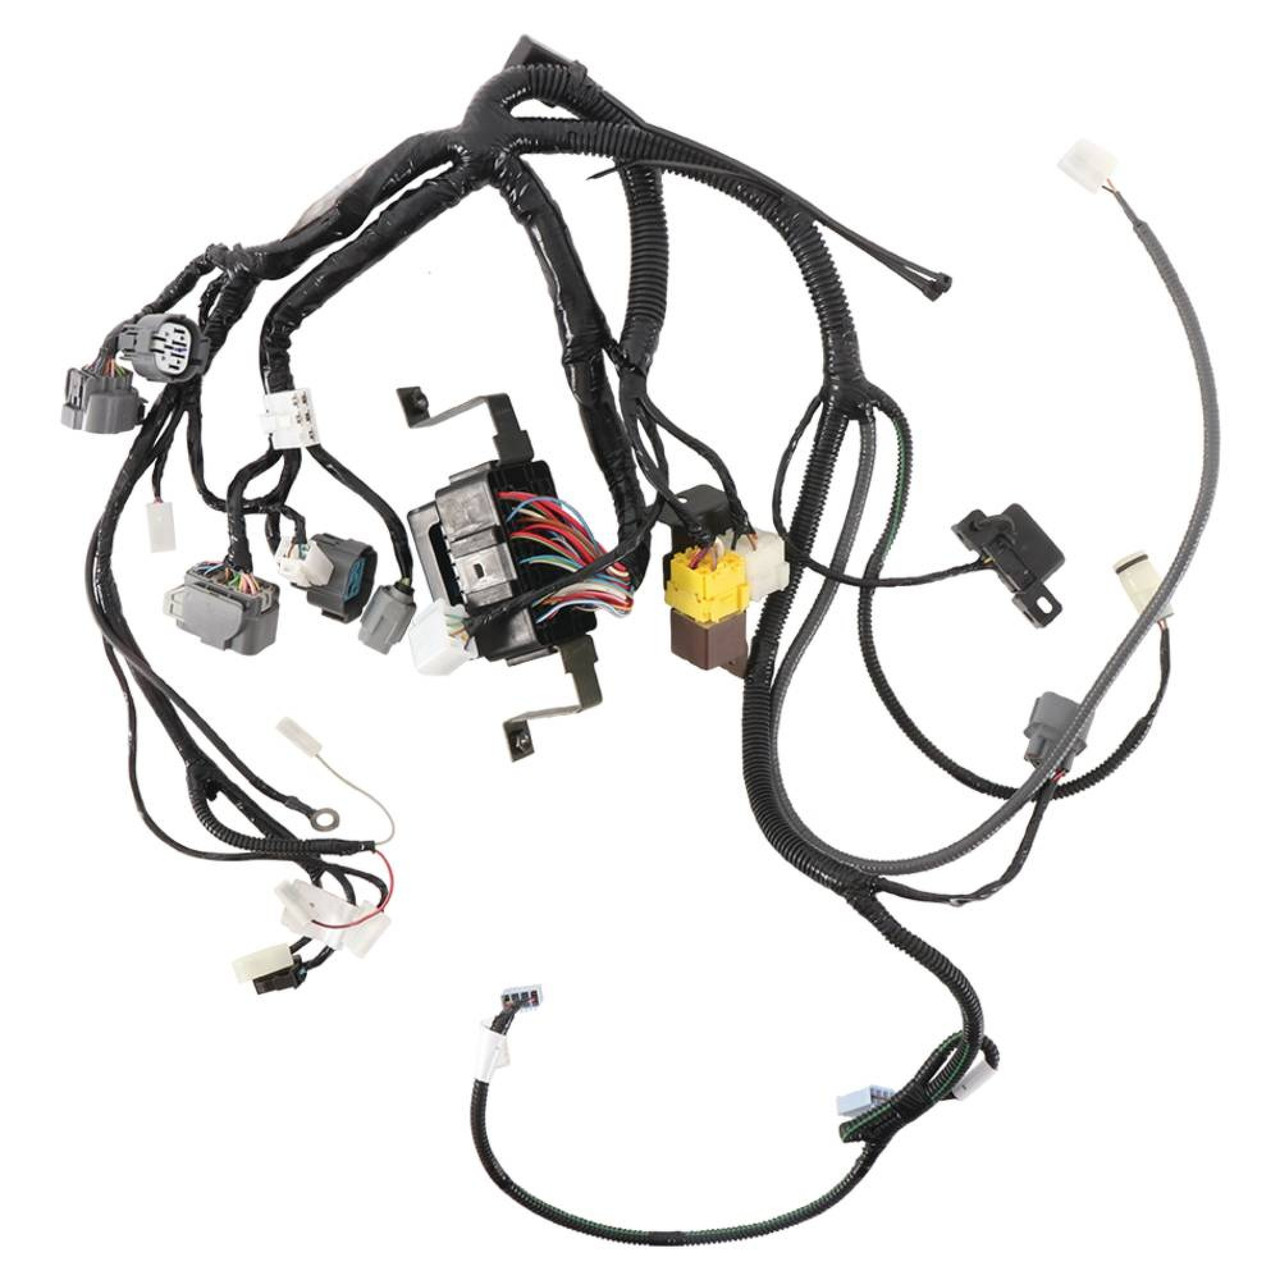 Wire Harness for Mahindra 4450 E007701711D91 on